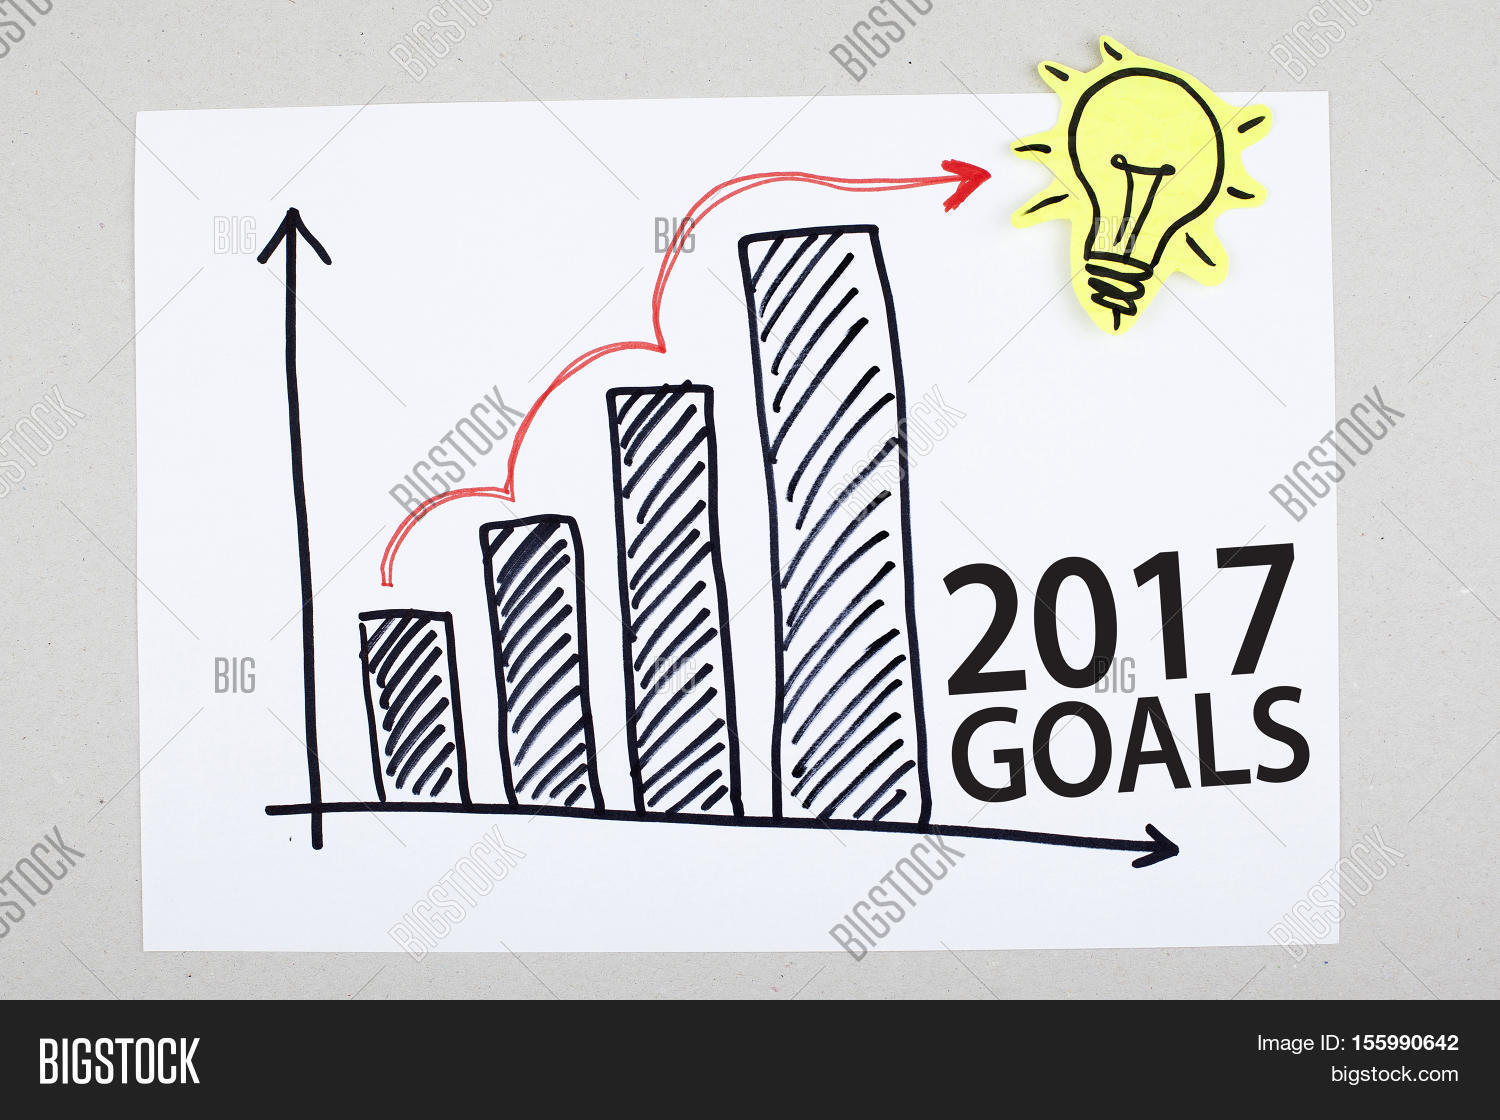 2017 goals success concept new year resolutions plans and 2017 goals success concept new year resolutions plans and aspirations